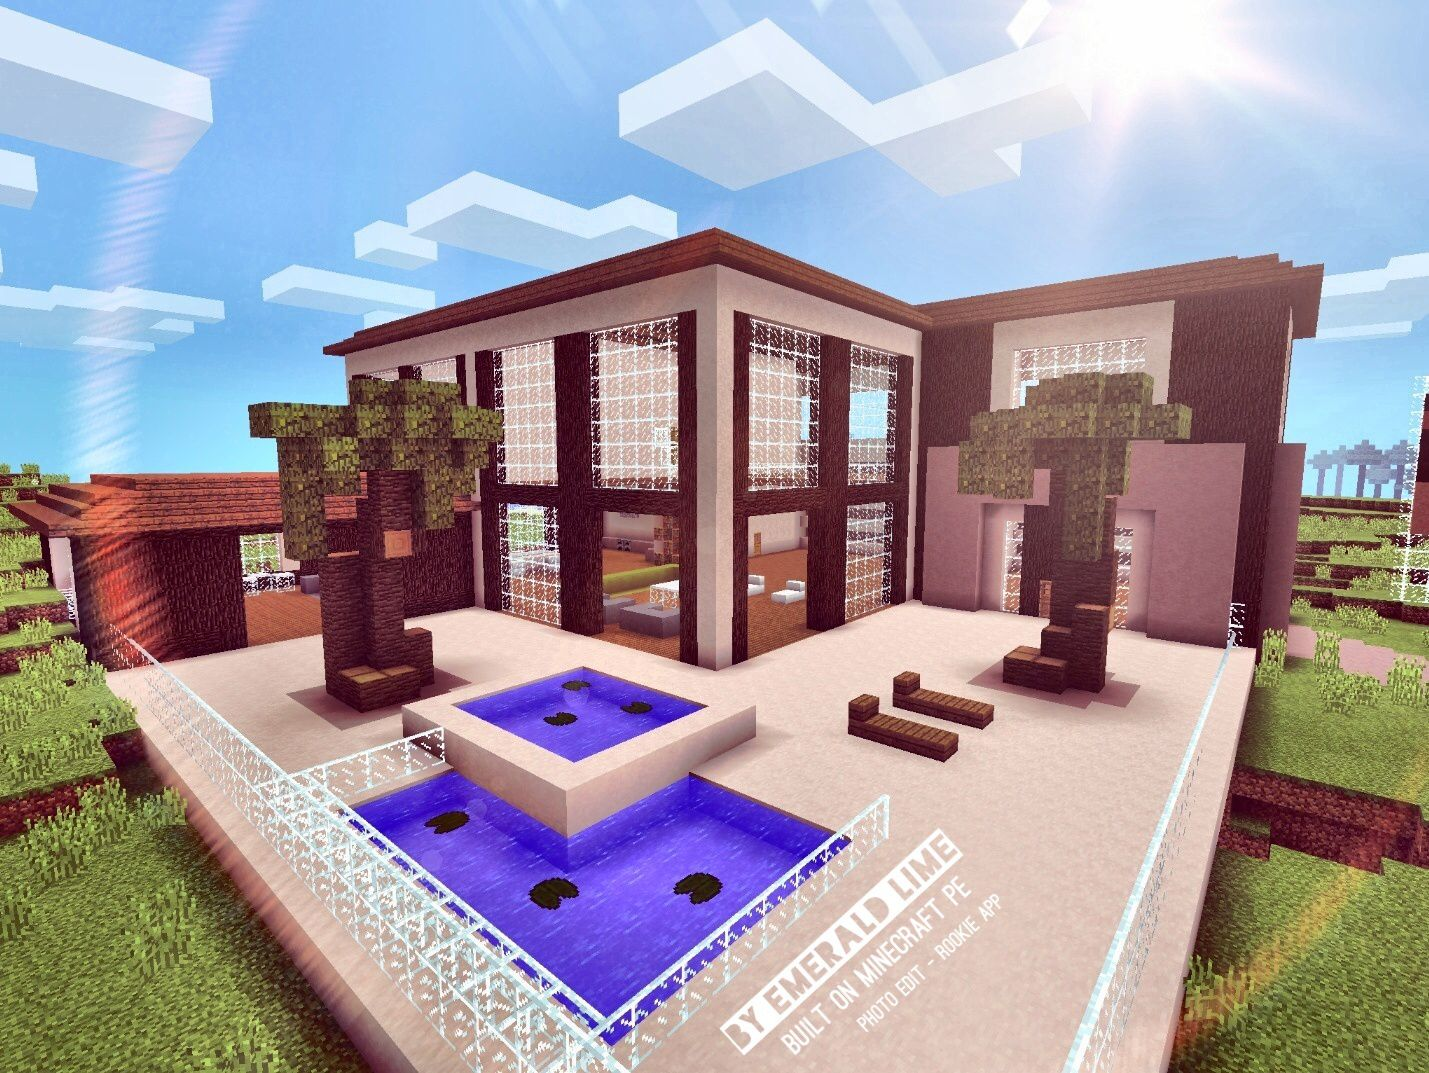 1000+ images about Minecraft houses on Pinterest - ^